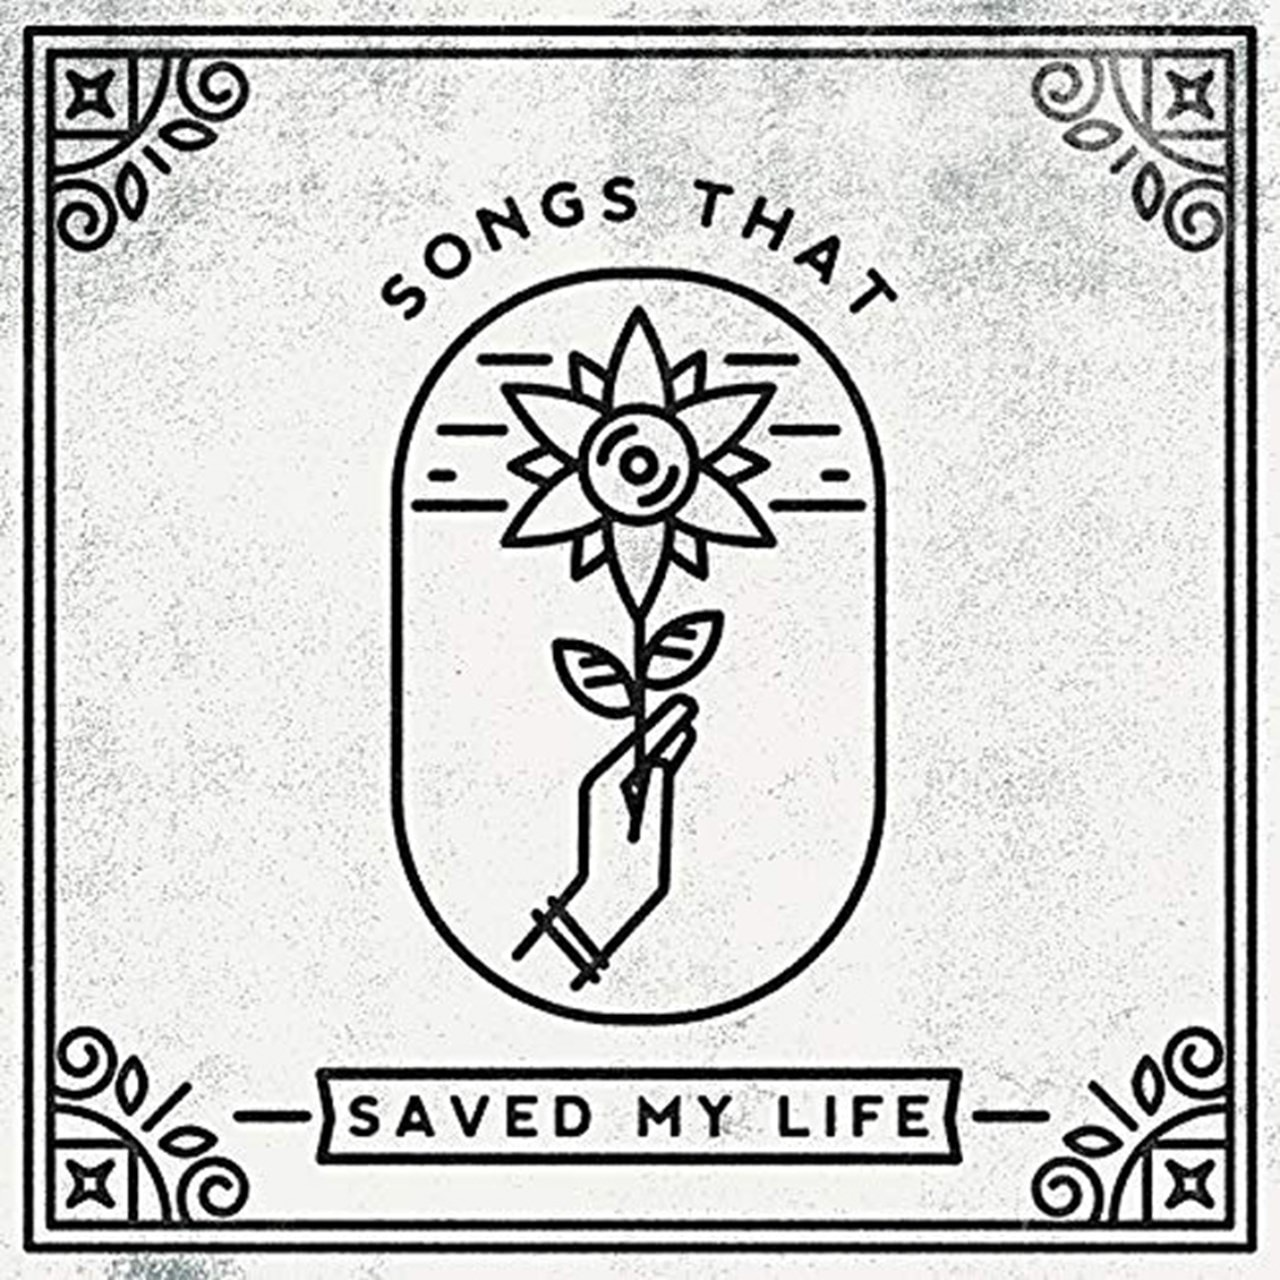 Songs That Saved My Life - Volume 1 - 1